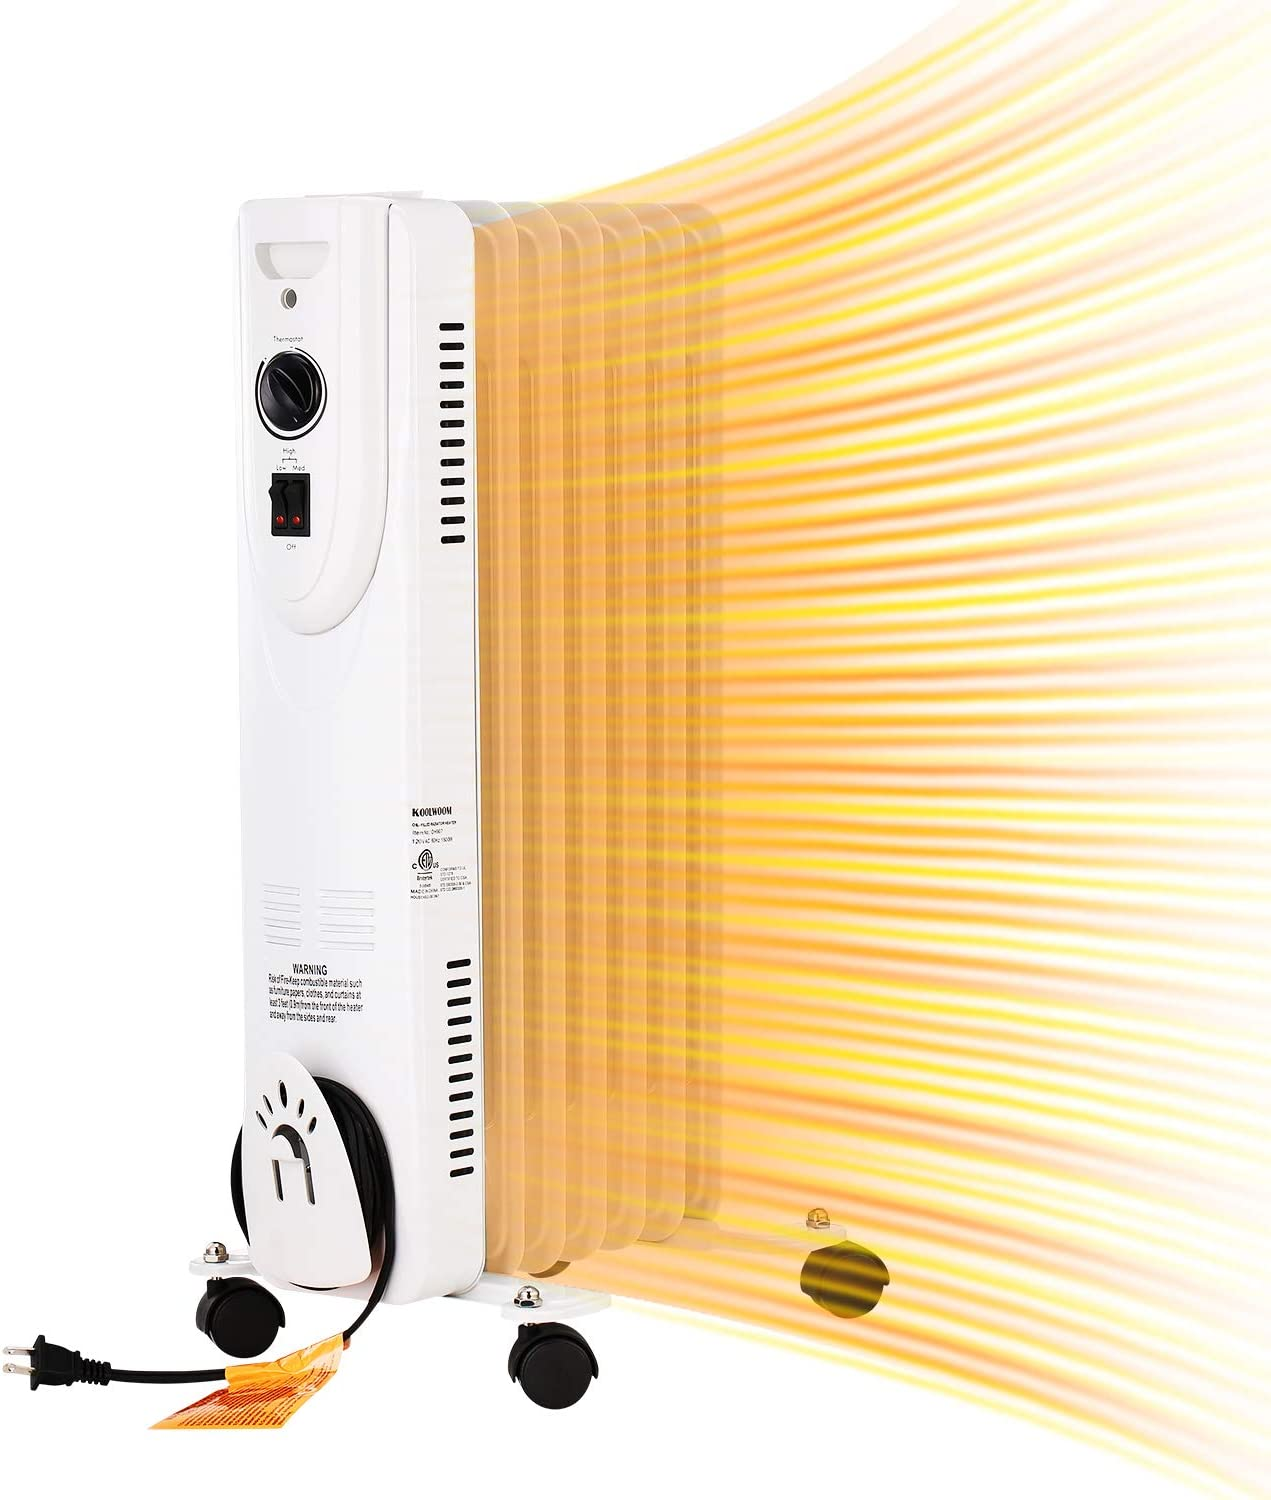 1500W Oil Filled Heater with thermostat Portable Radiator Space Heater with 2 Heat Settings, Energy Saving(White)